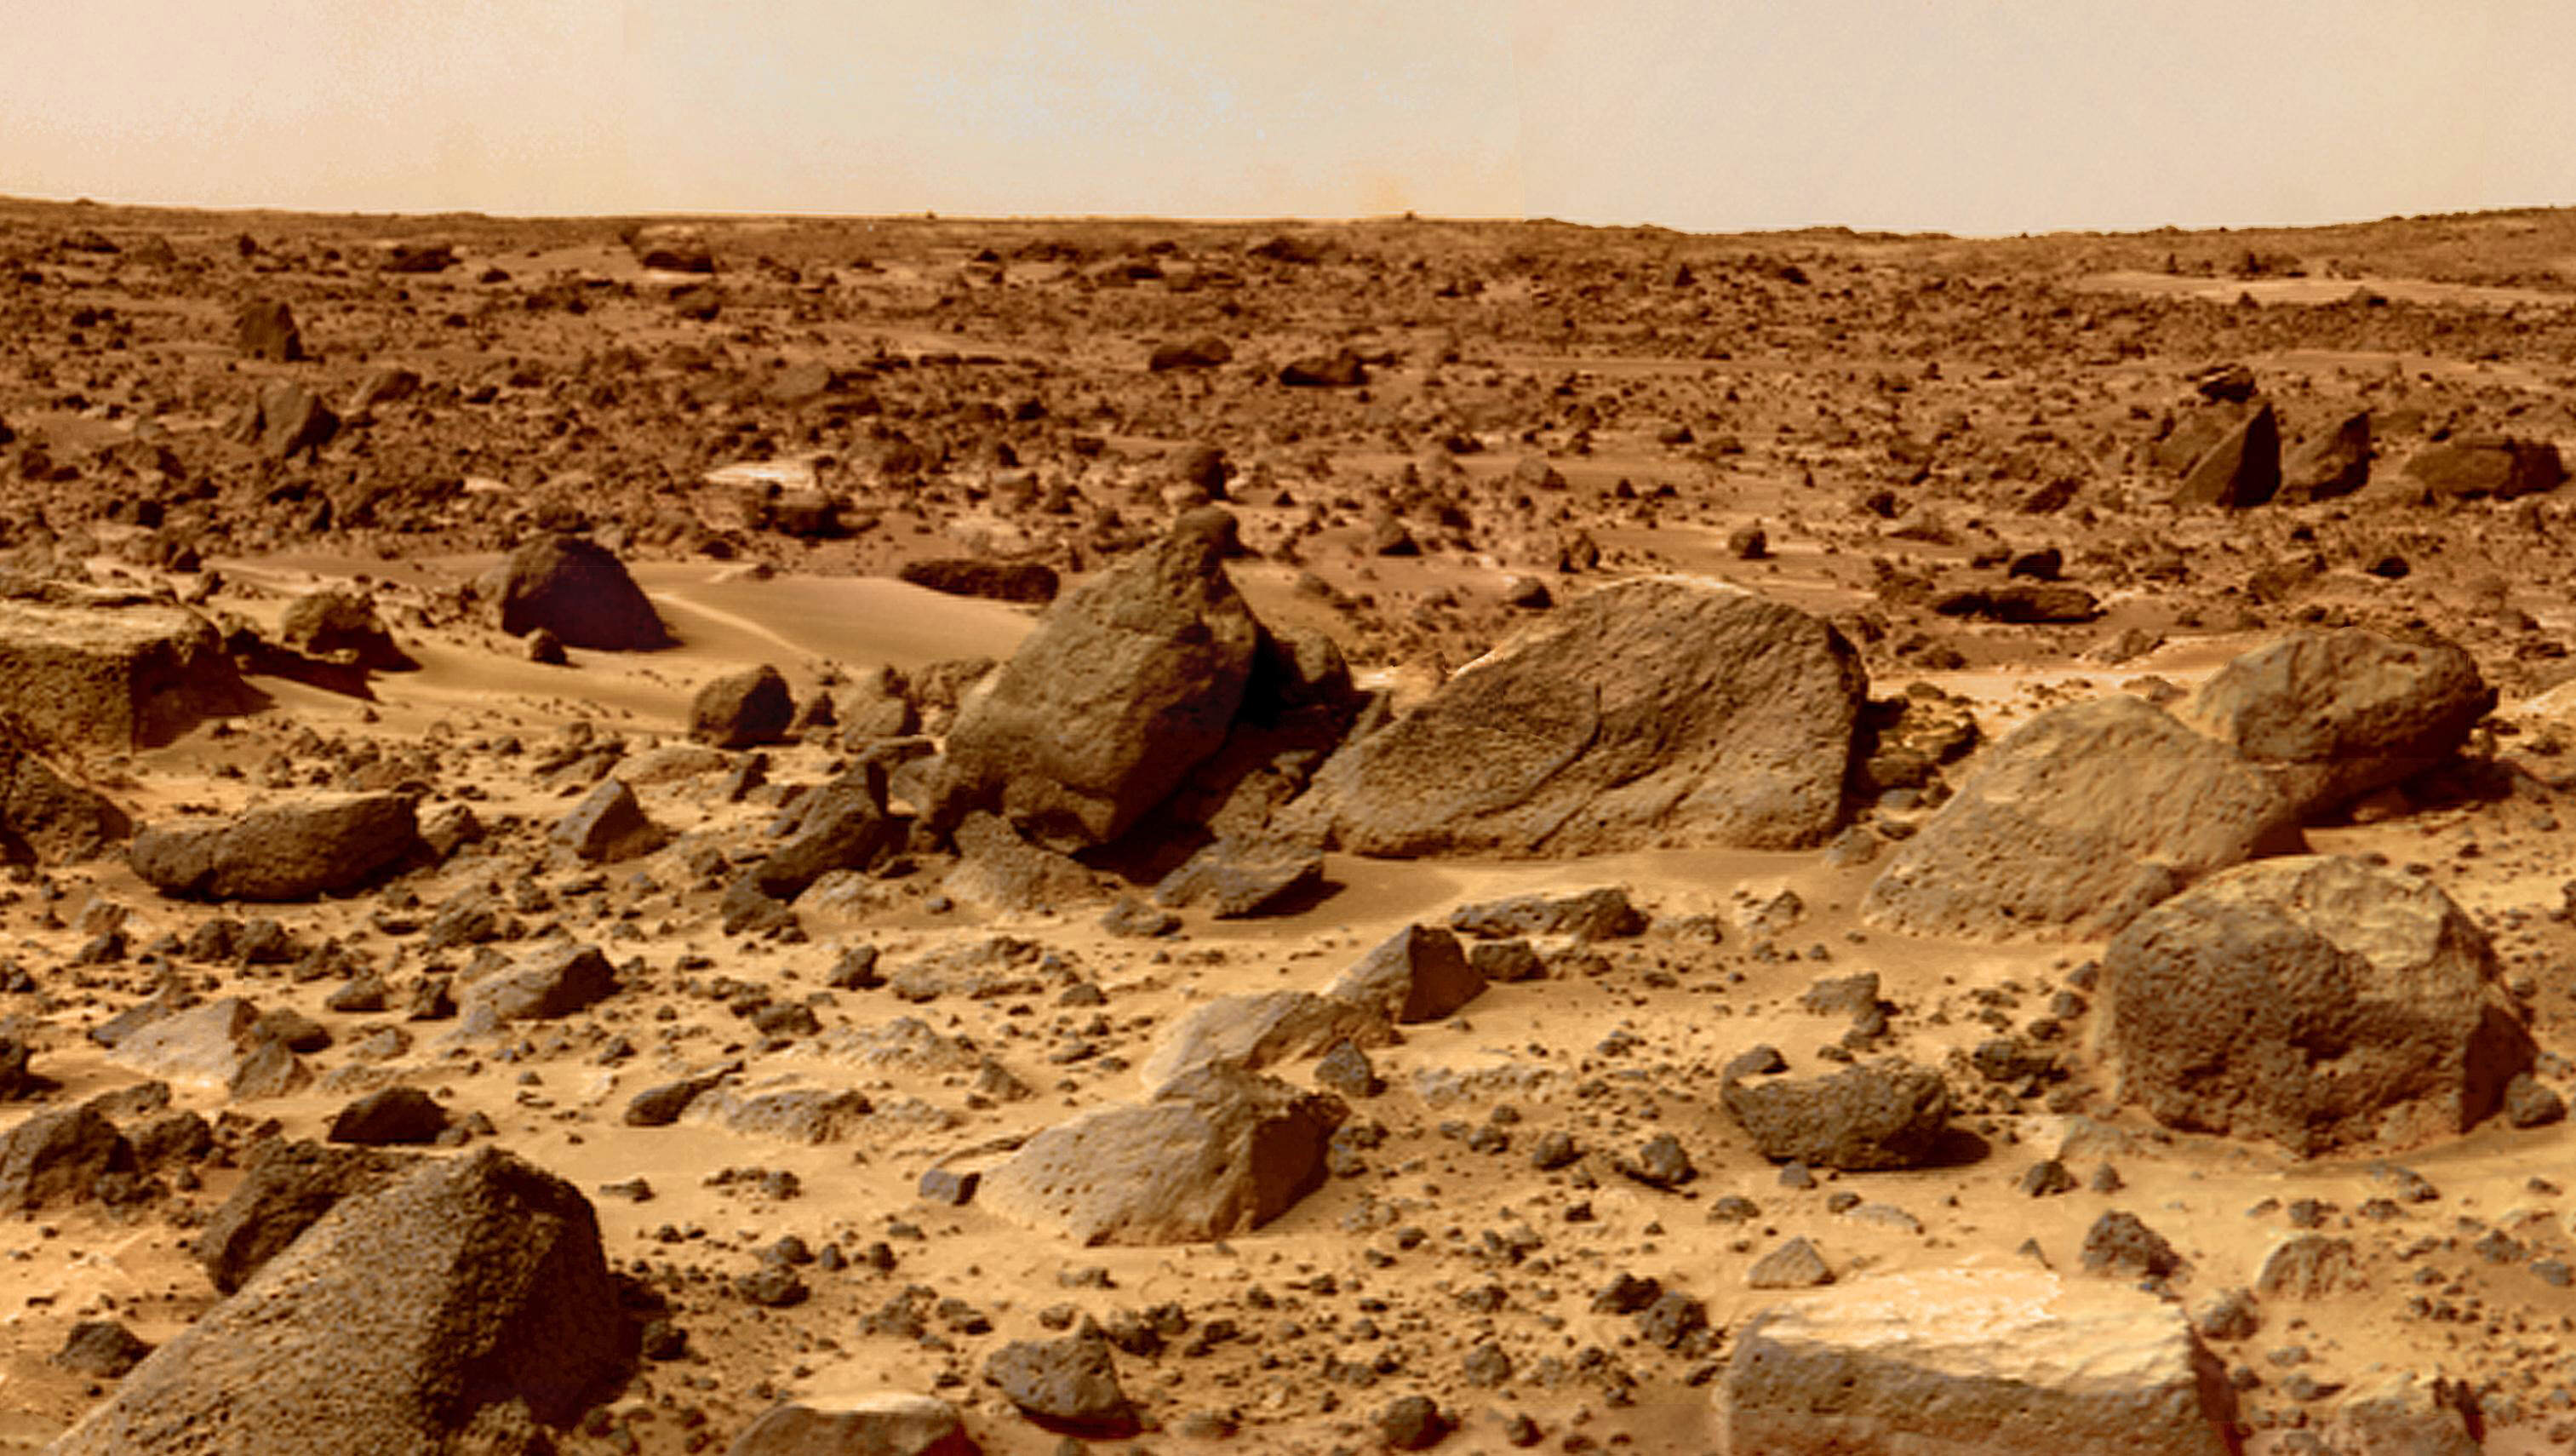 Europe And Russia To Go On Alien Hunting Mission To Find Life On Mars Mars surface twin peaks